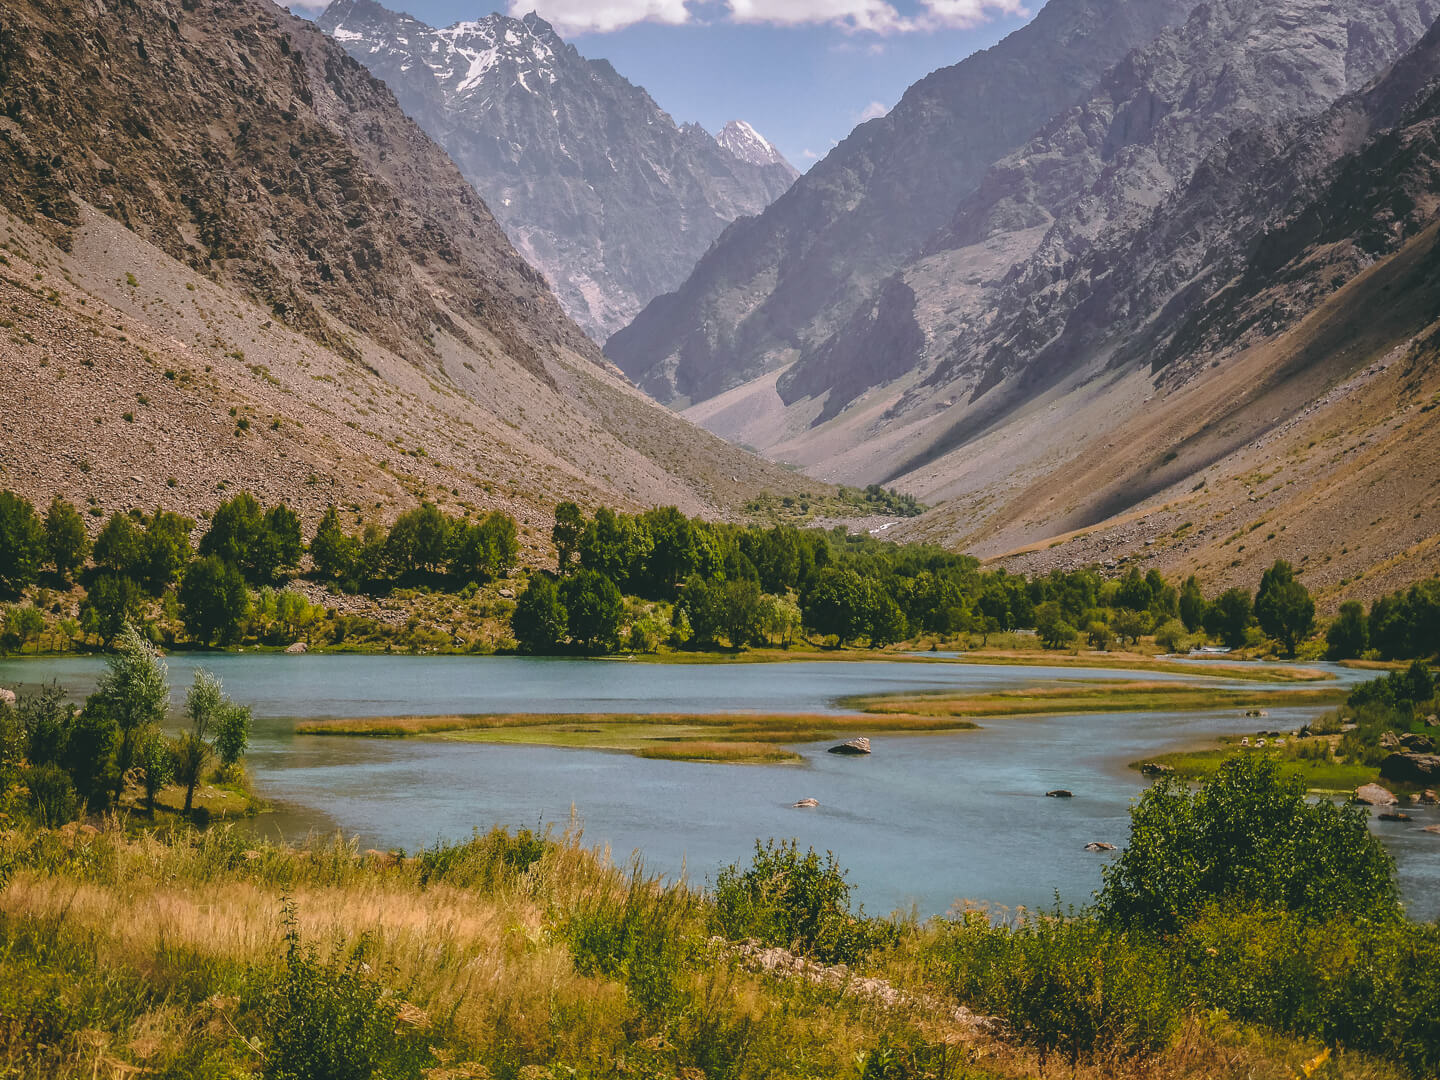 Jisev valley with mountains and lake in Pamirs